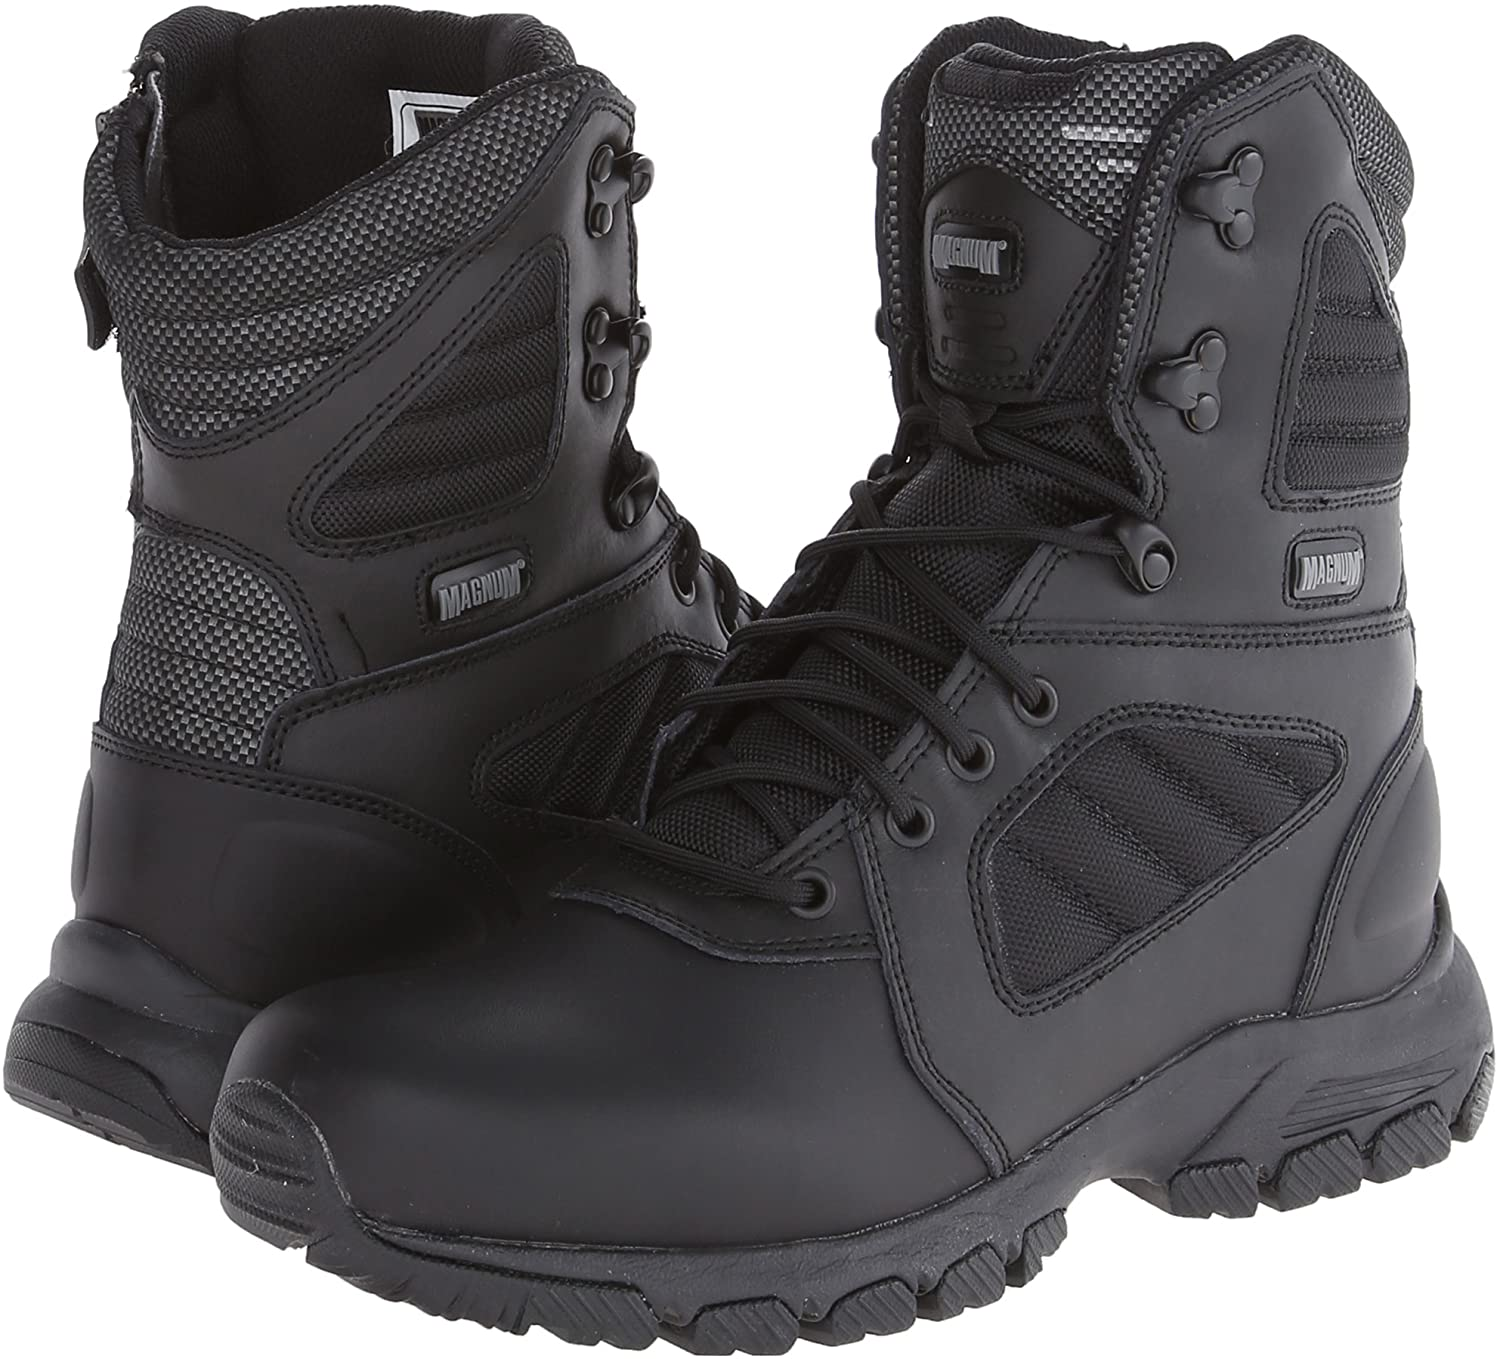 If you're looking for a reliable pair of EMS boots check Magnum Slip Resistant Work Boots.